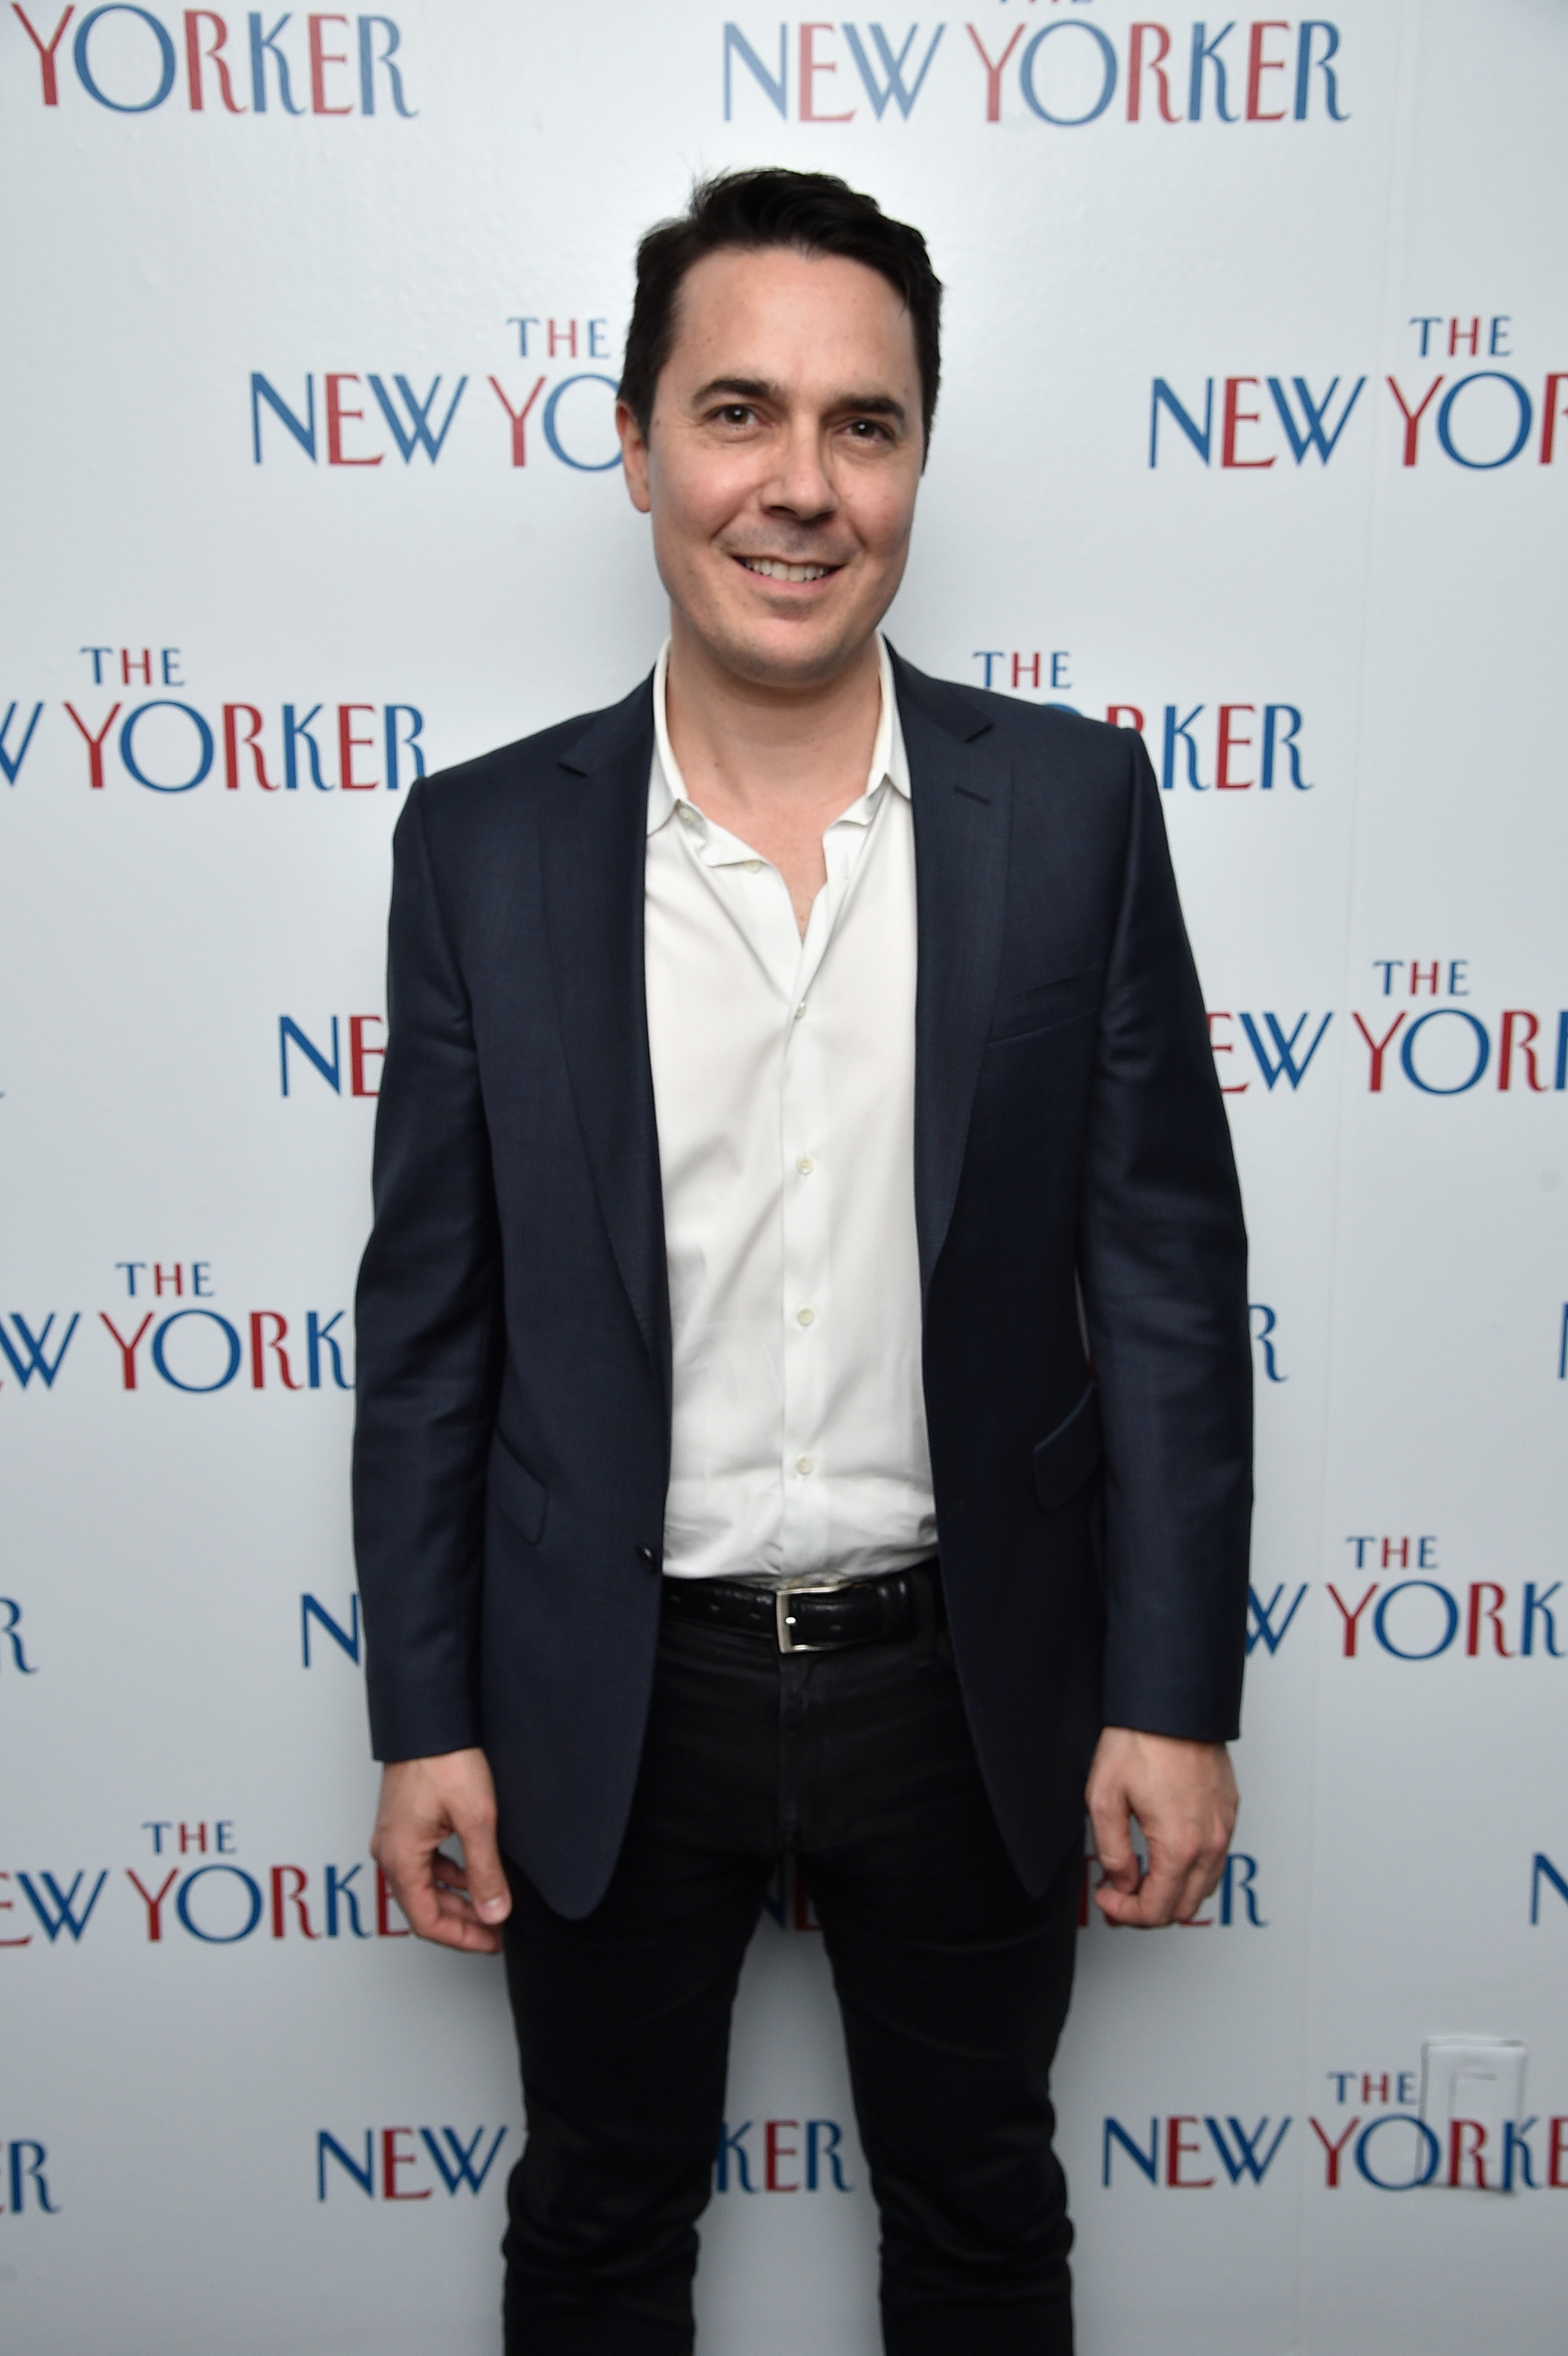 Washington correspondent for The New Yorker Ryan Lizza attends The New Yorker's annual party kicking off The White House Correspondents' Association Dinner Weekend on April 29, 2016 in Washington, DC.